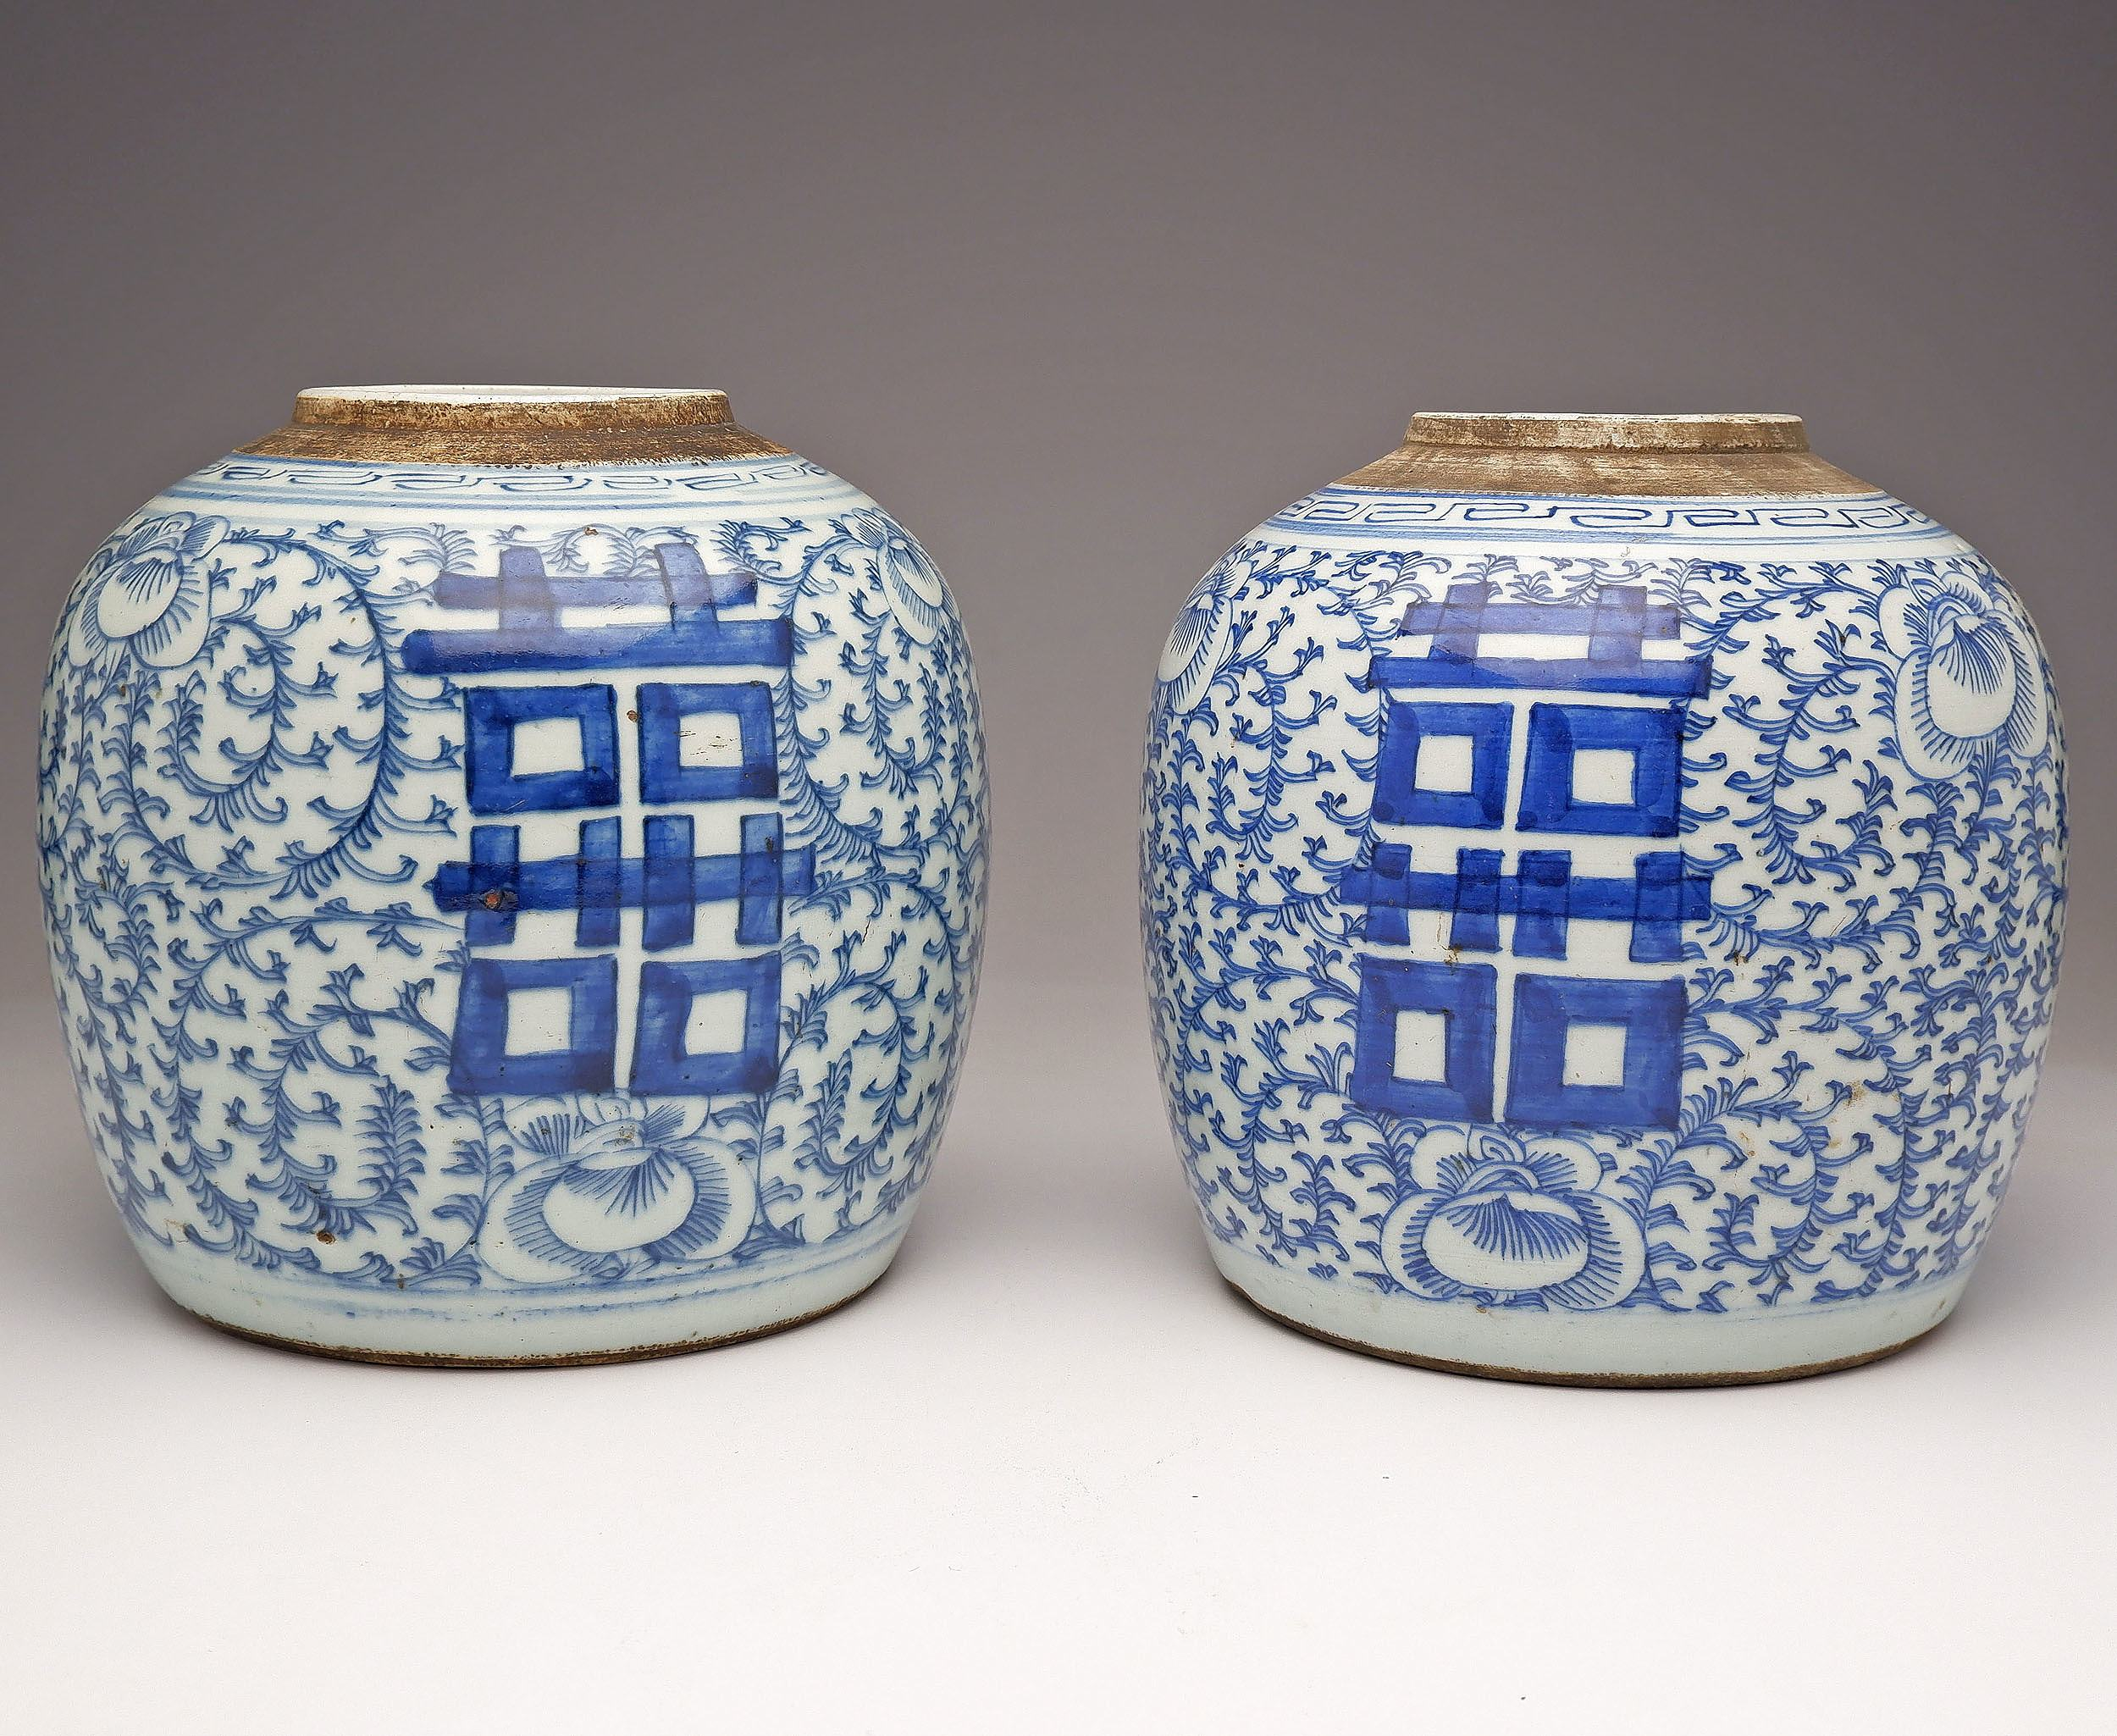 'Pair of Chinese Blue and White Jars Decorated with Peony Scrolls and Double Happiness, Late Qing'